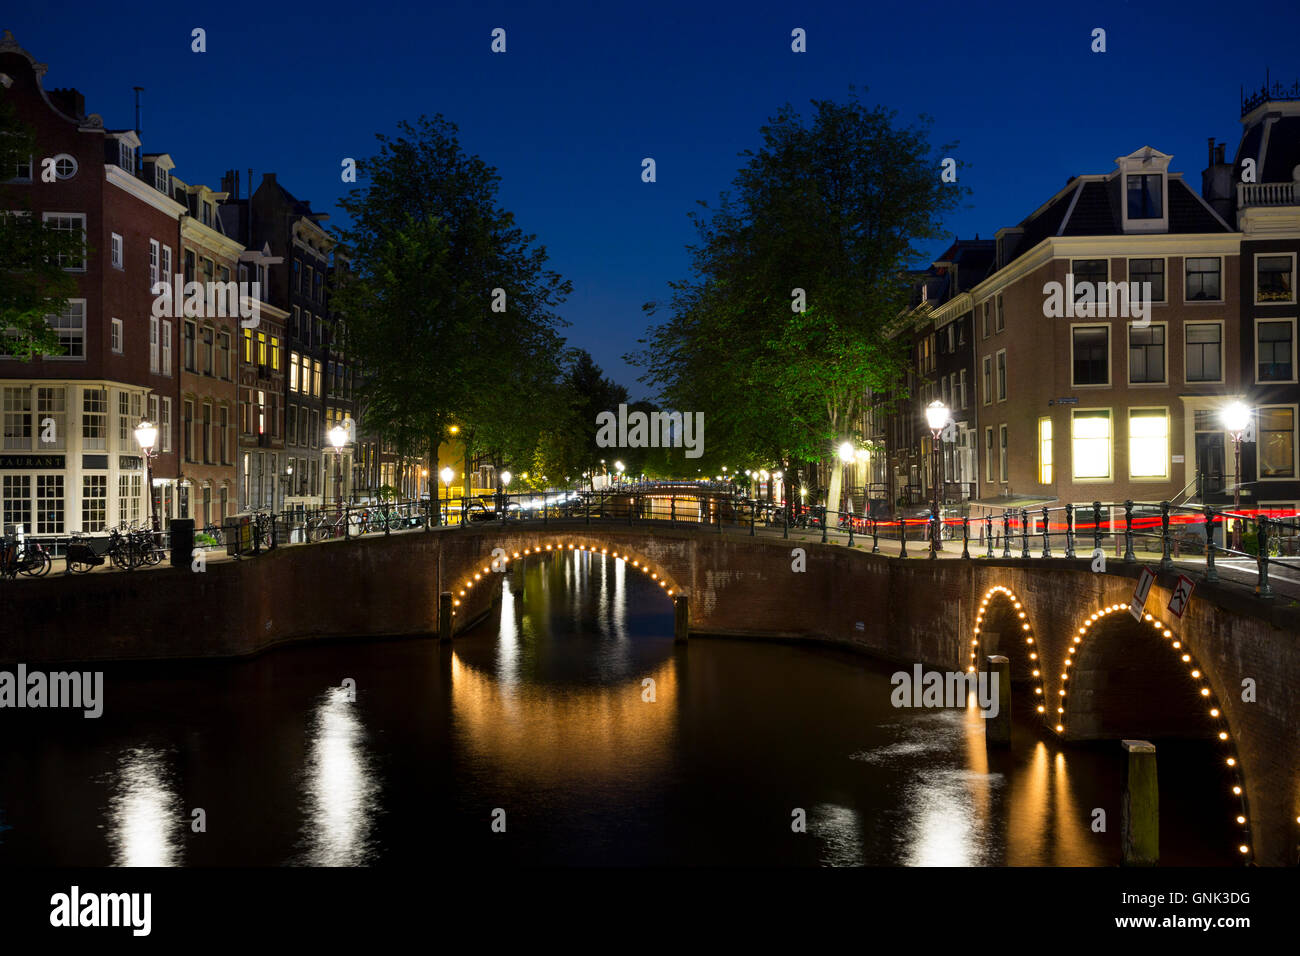 Canal and bridges - Kaisersgracht and Leidsegracht, canal ring area, Jordaan district, Amsterdam - Stock Image